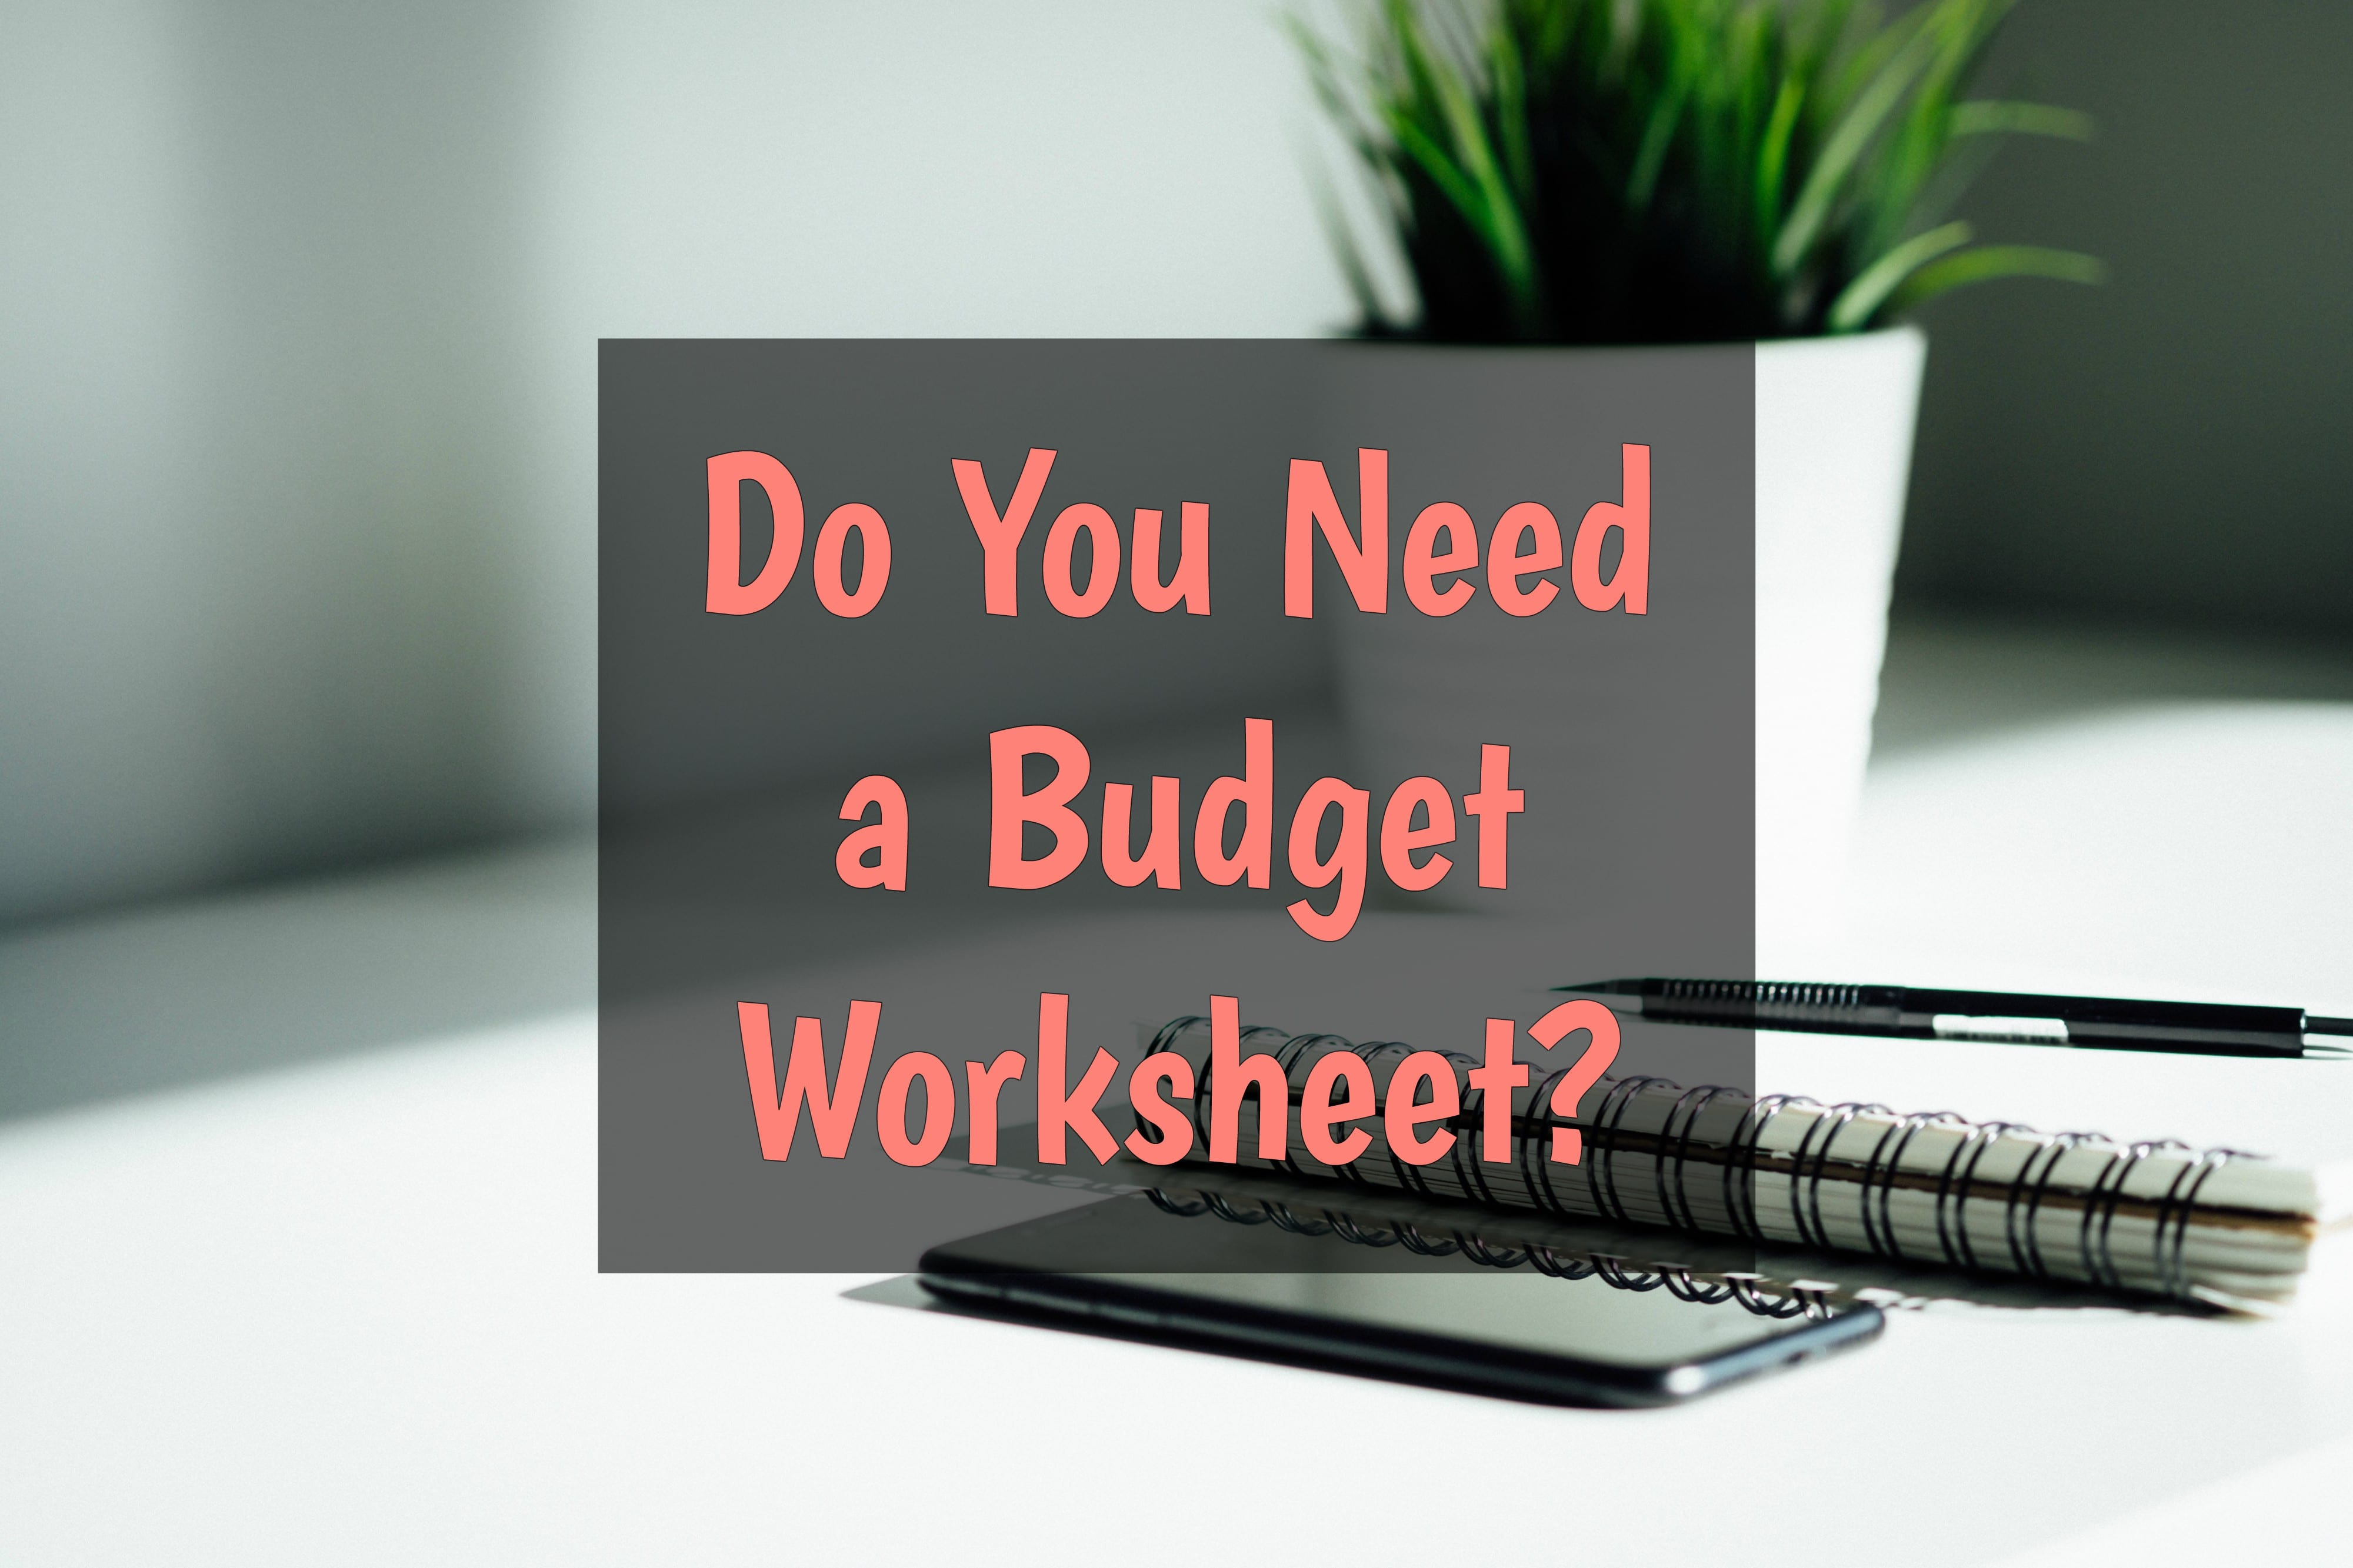 You Need A Budget Spreadsheet For Do You Need A Budget Worksheet?  Real Money Robert